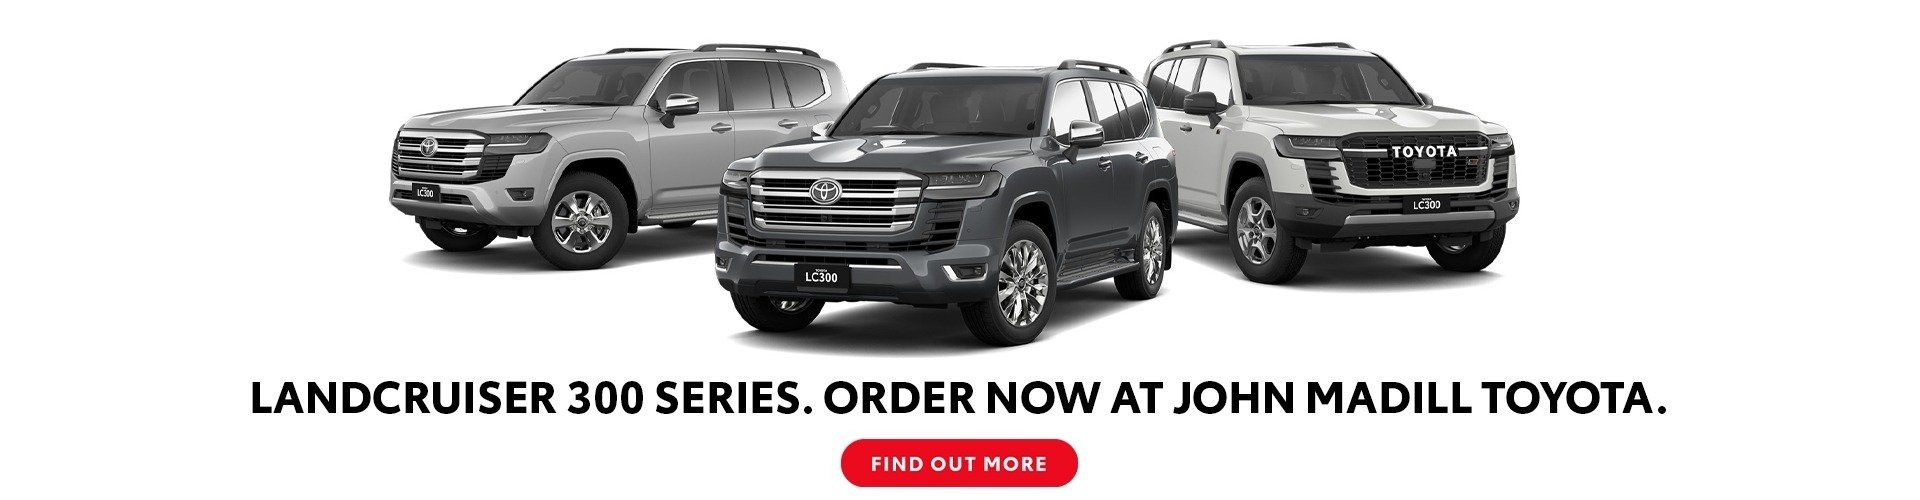 Find out more on the LandCruiser 300 series at John Madill Toyota